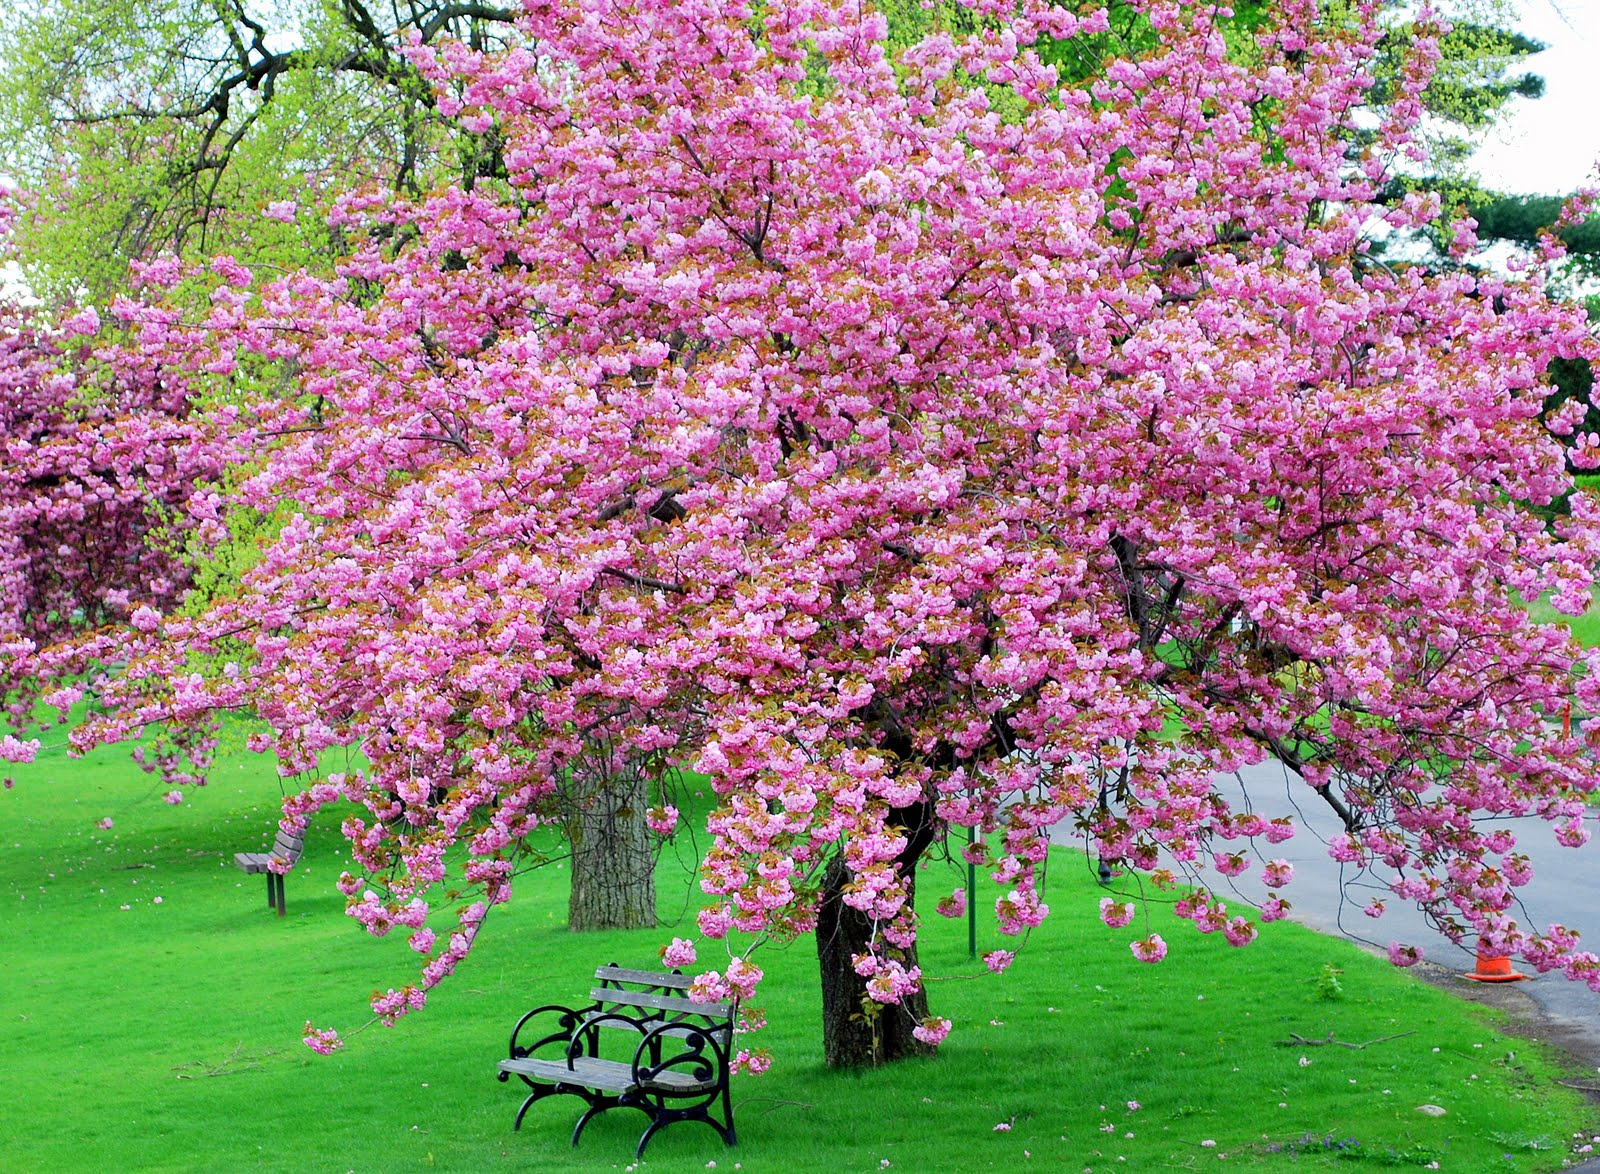 Mille fiori favoriti pink saturday pink trees Japanese cherry blossom tree